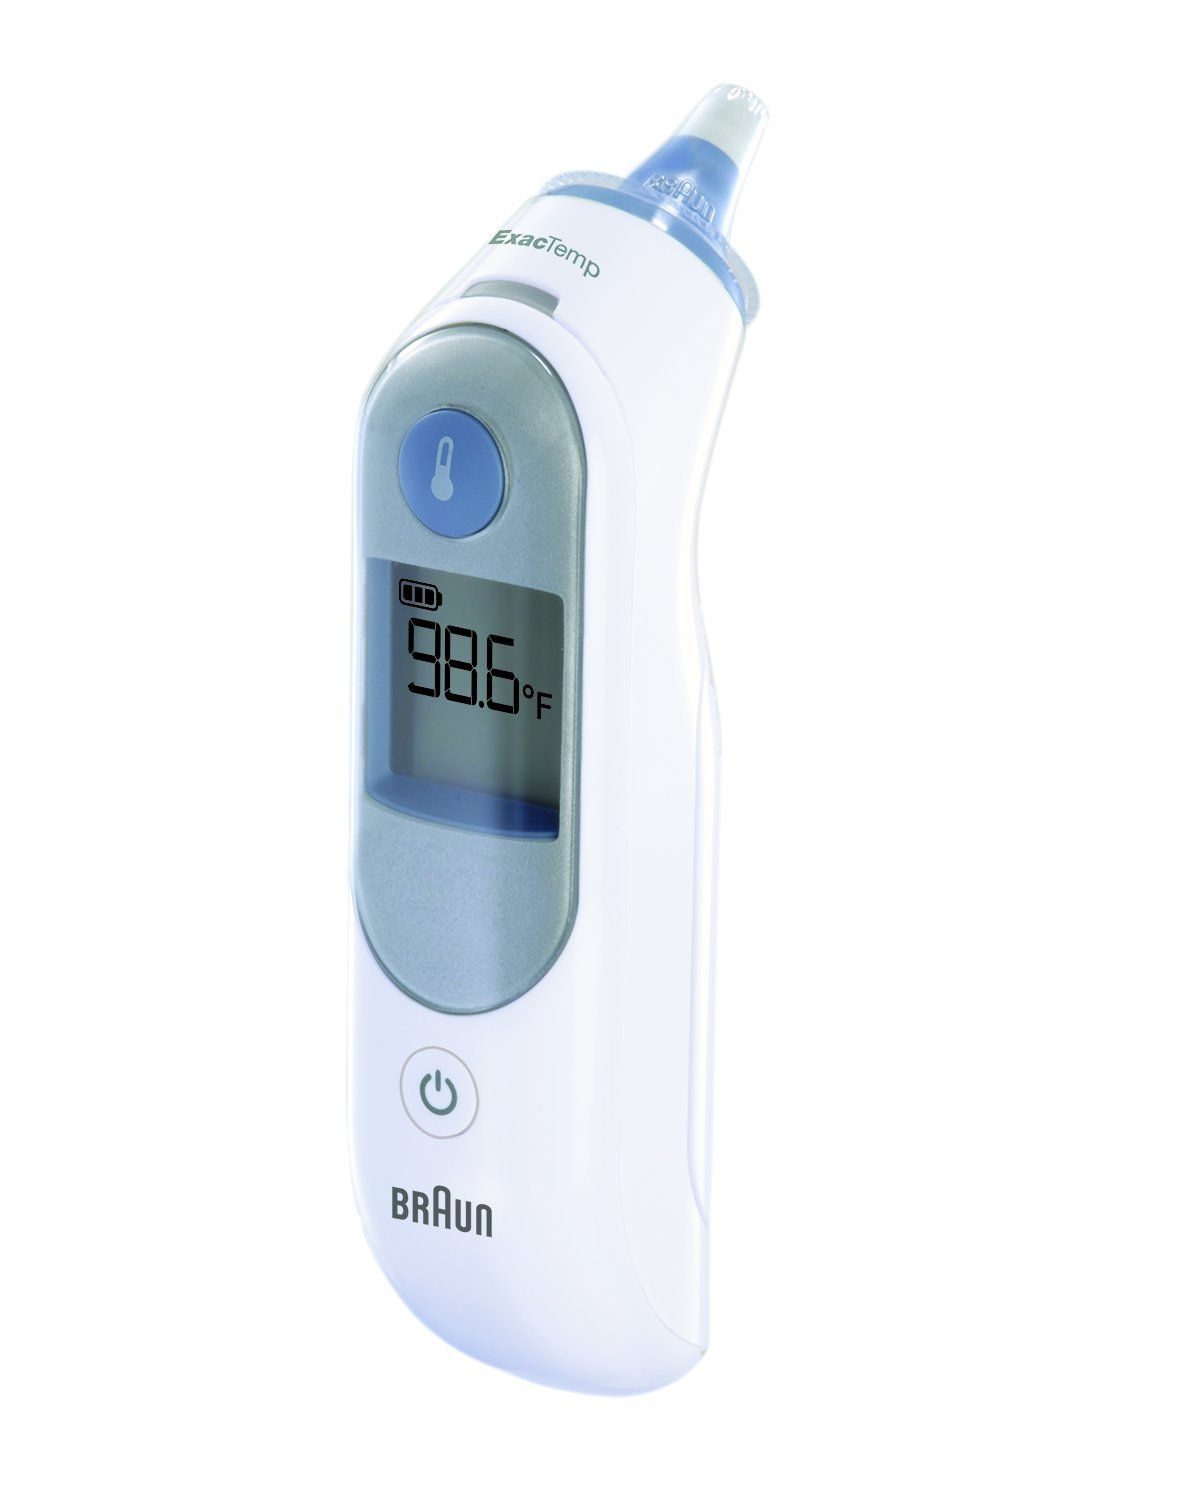 Braun Digital Ear Thermometer ThermoScan 5 IRT6500